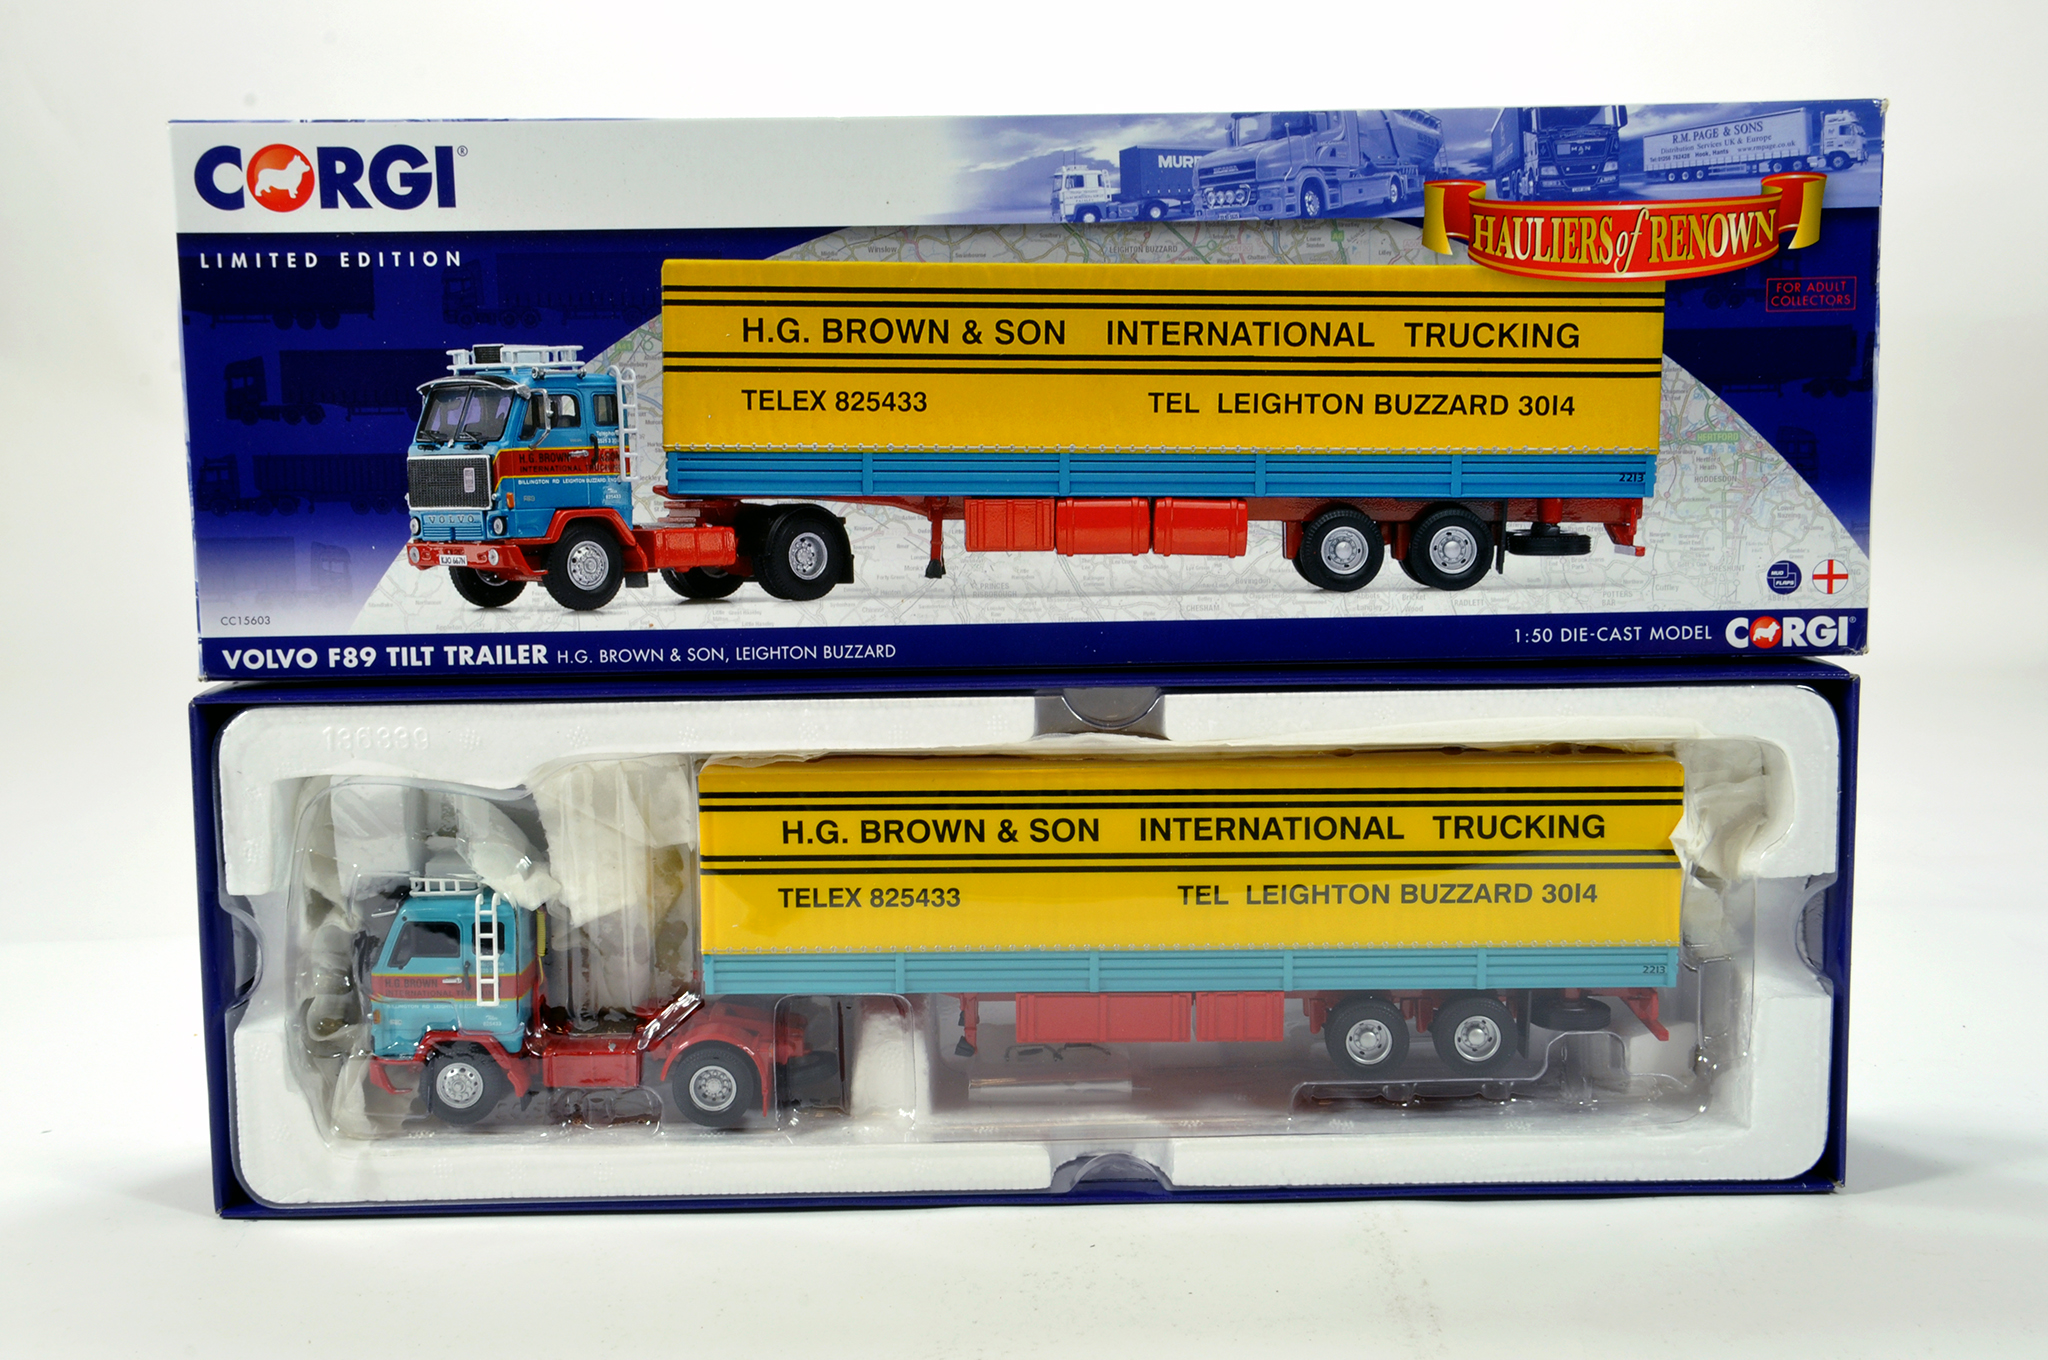 Lot 30 - Corgi 1/50 diecast truck issue comprising No. CC15603 Volvo F89 Tilt Trailer in livery of HG Brown